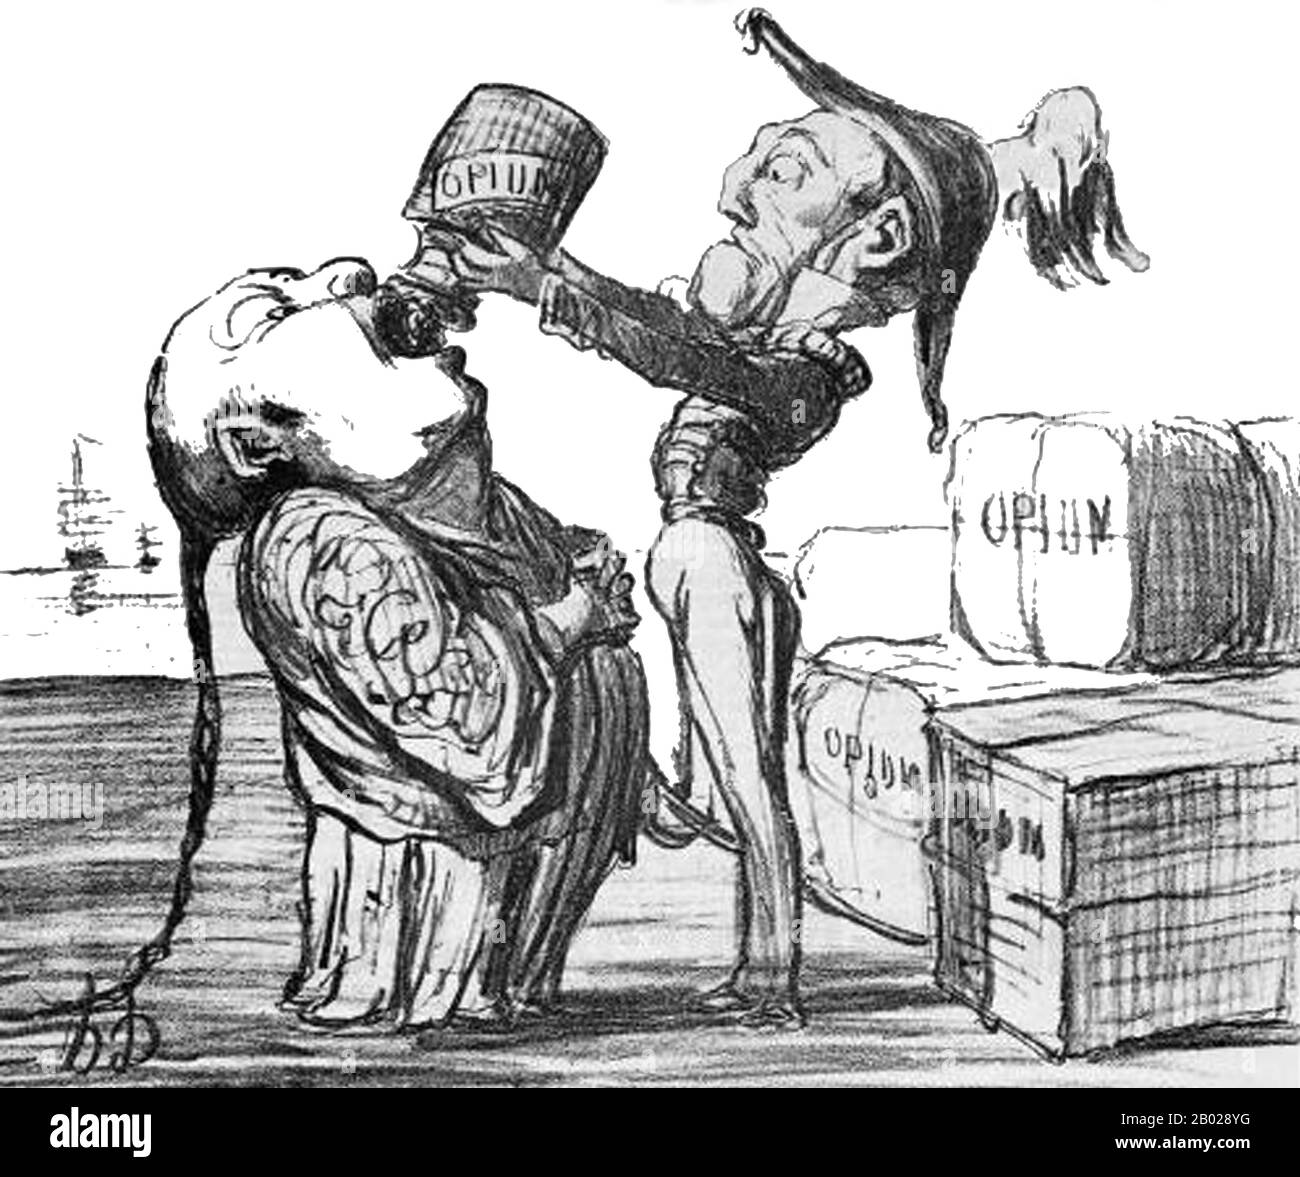 Gallery Second Opium War High Resolution Stock Photography and Images -  Alamy